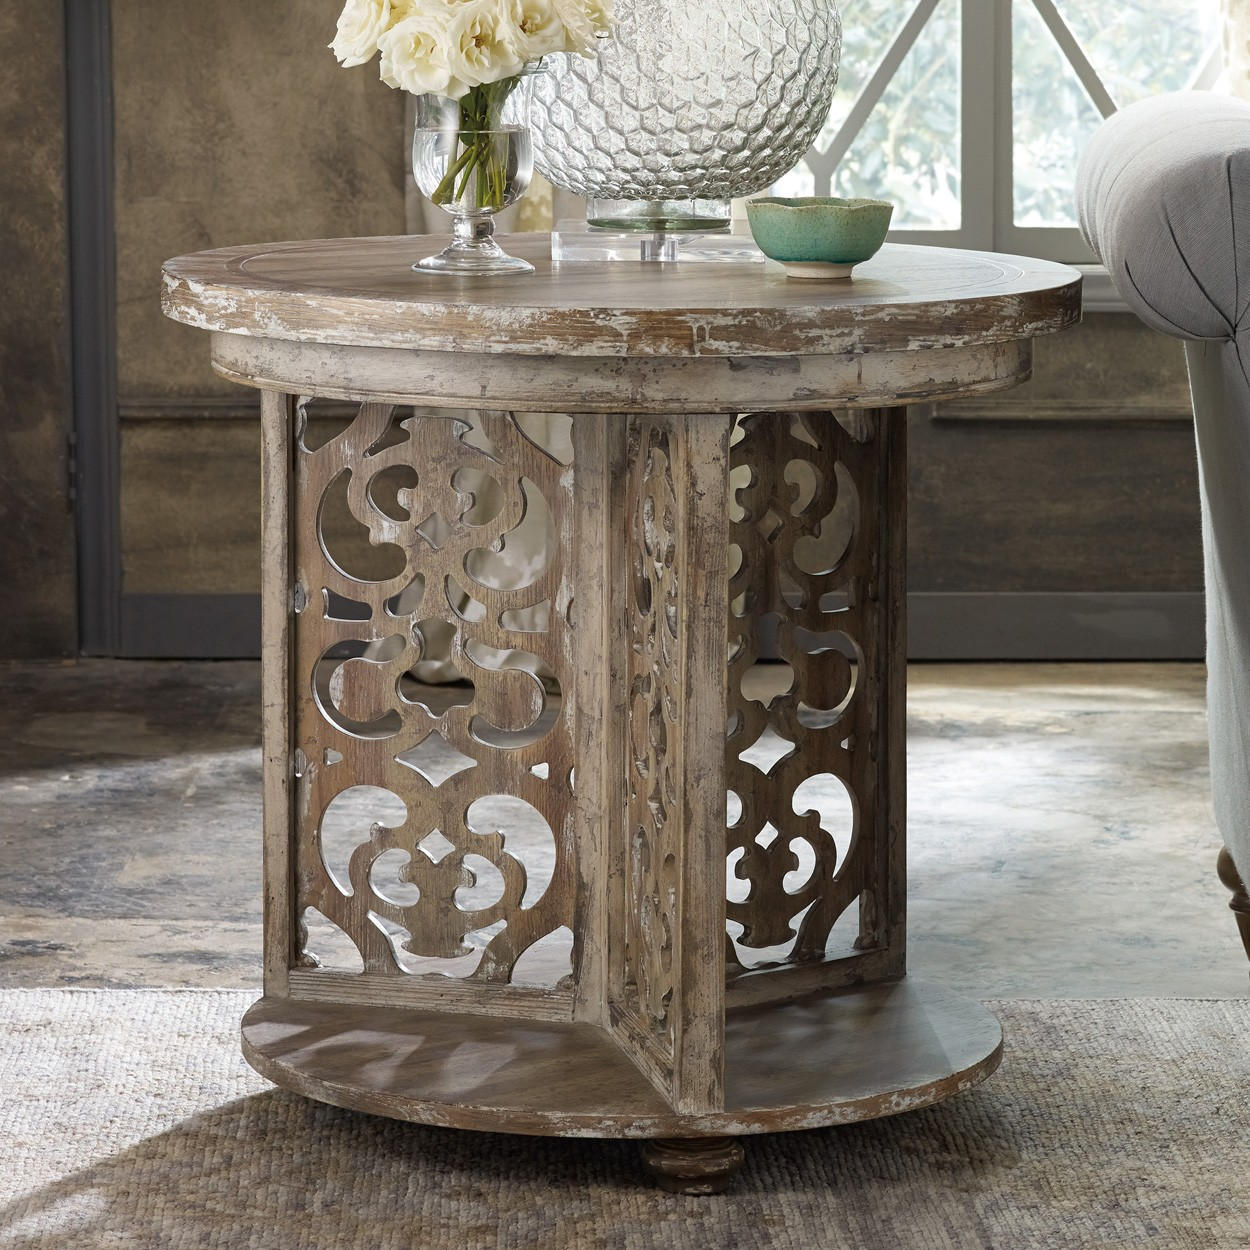 chatelet wood round accent table caramel froth humble abode roundaccenttable caramelfroth hookerfurniture and metal white living room cabinet hardware pulls pottery barn small